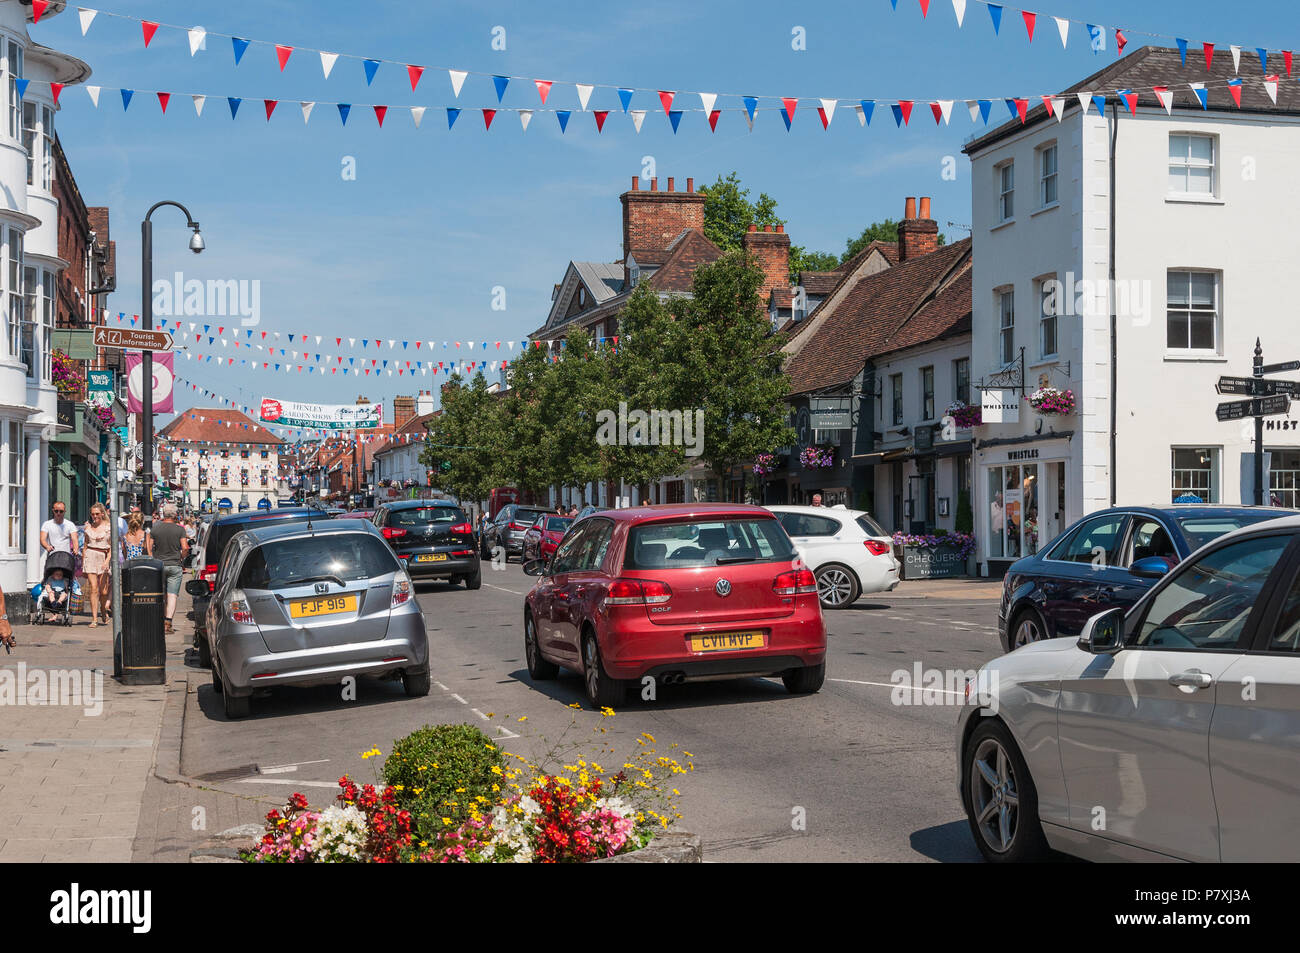 Marlow High Street, busy with traffic on a sunny Saturday. Marlow, Buckinghamshire, England, UK Stock Photo